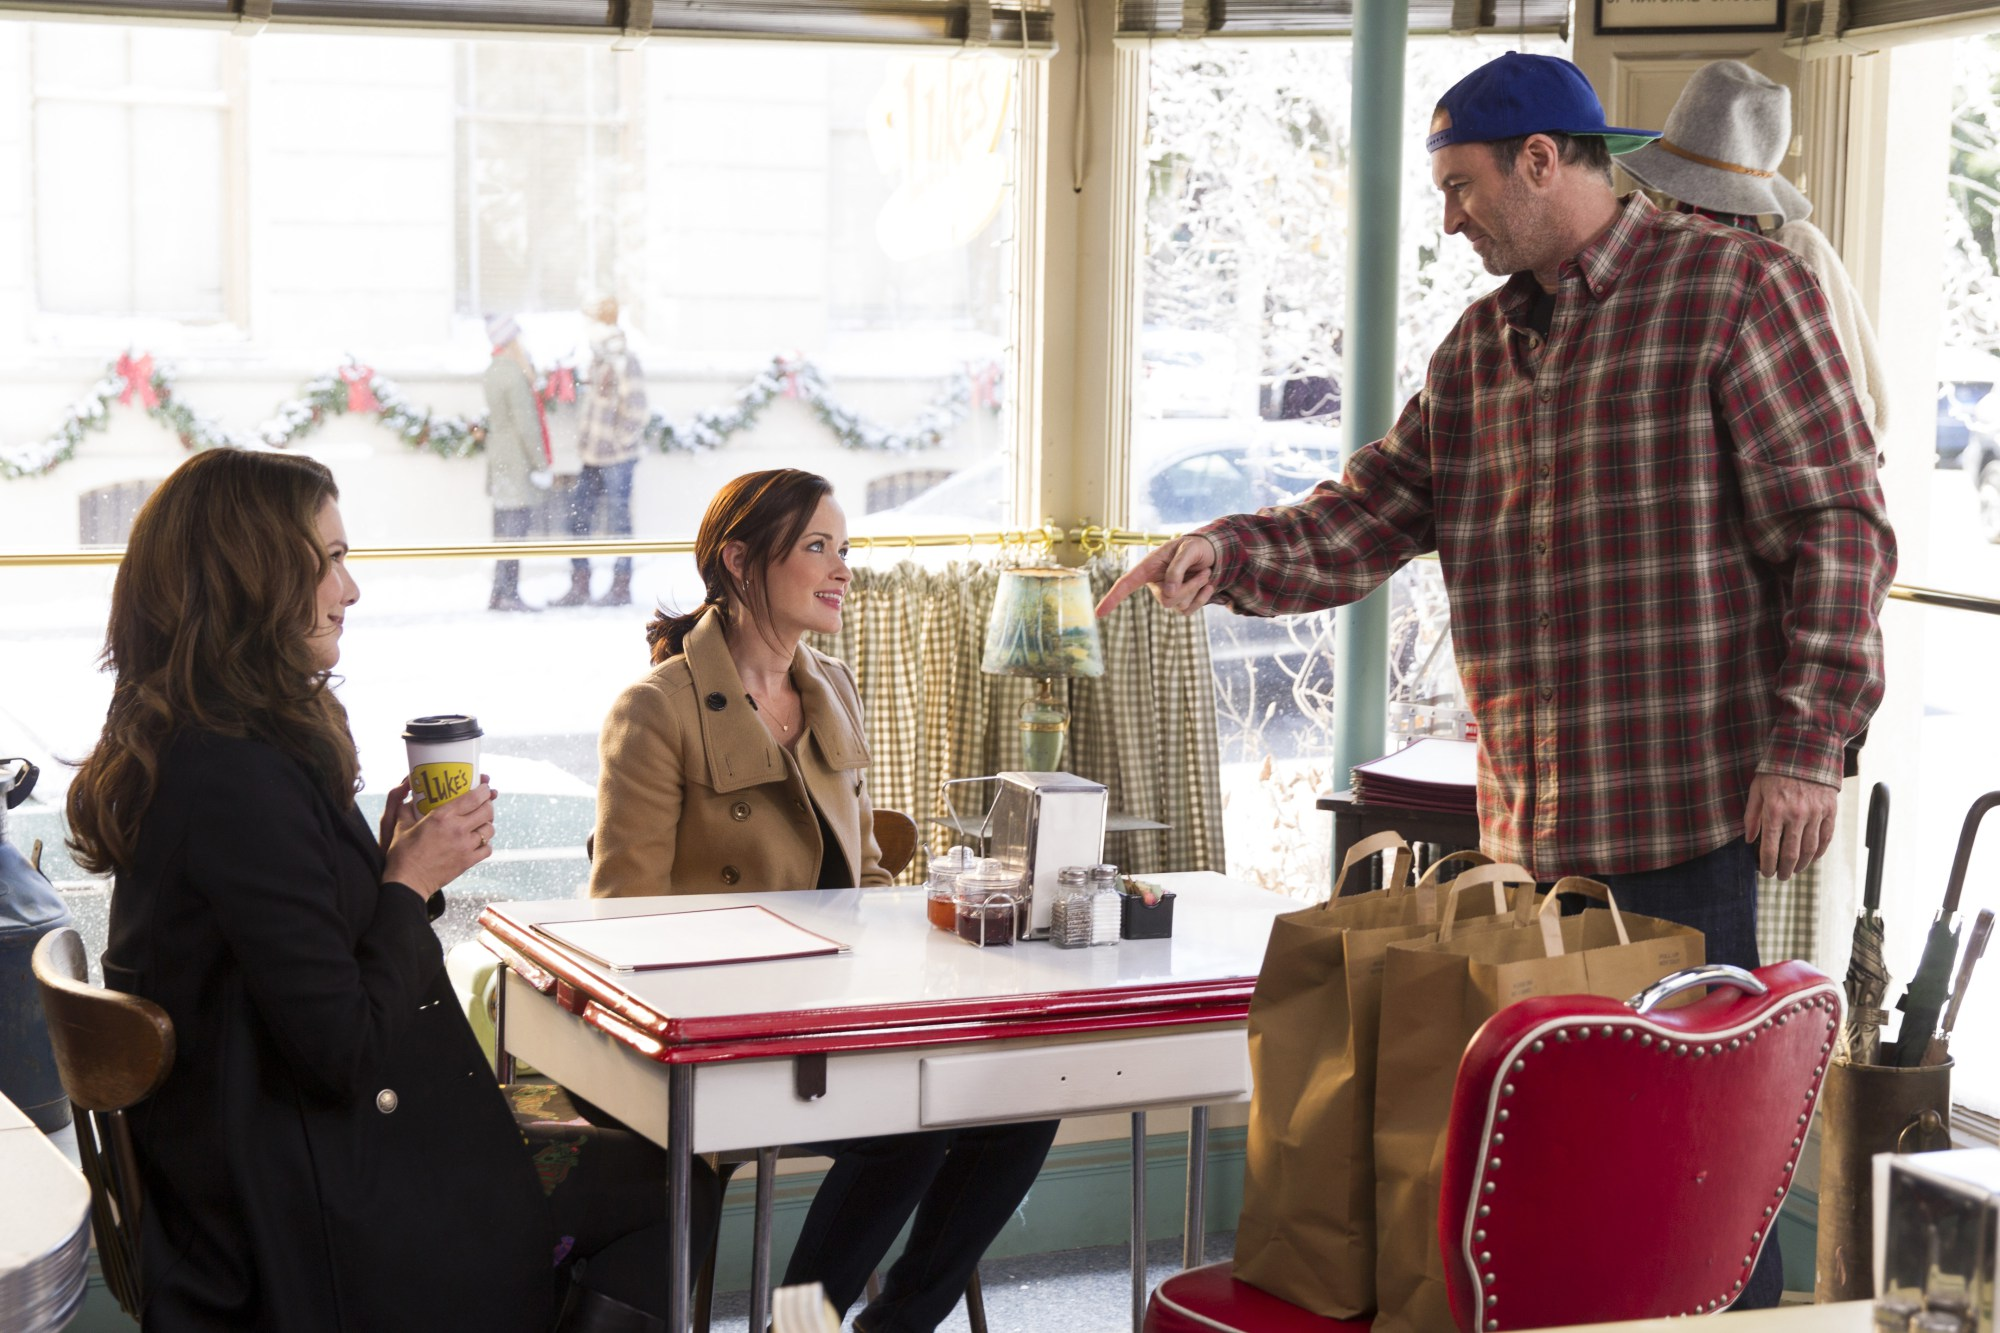 3 Brooklyn Cafes Will Turn Into Luke's Diner In Honor Of Gilmore Girls Revival